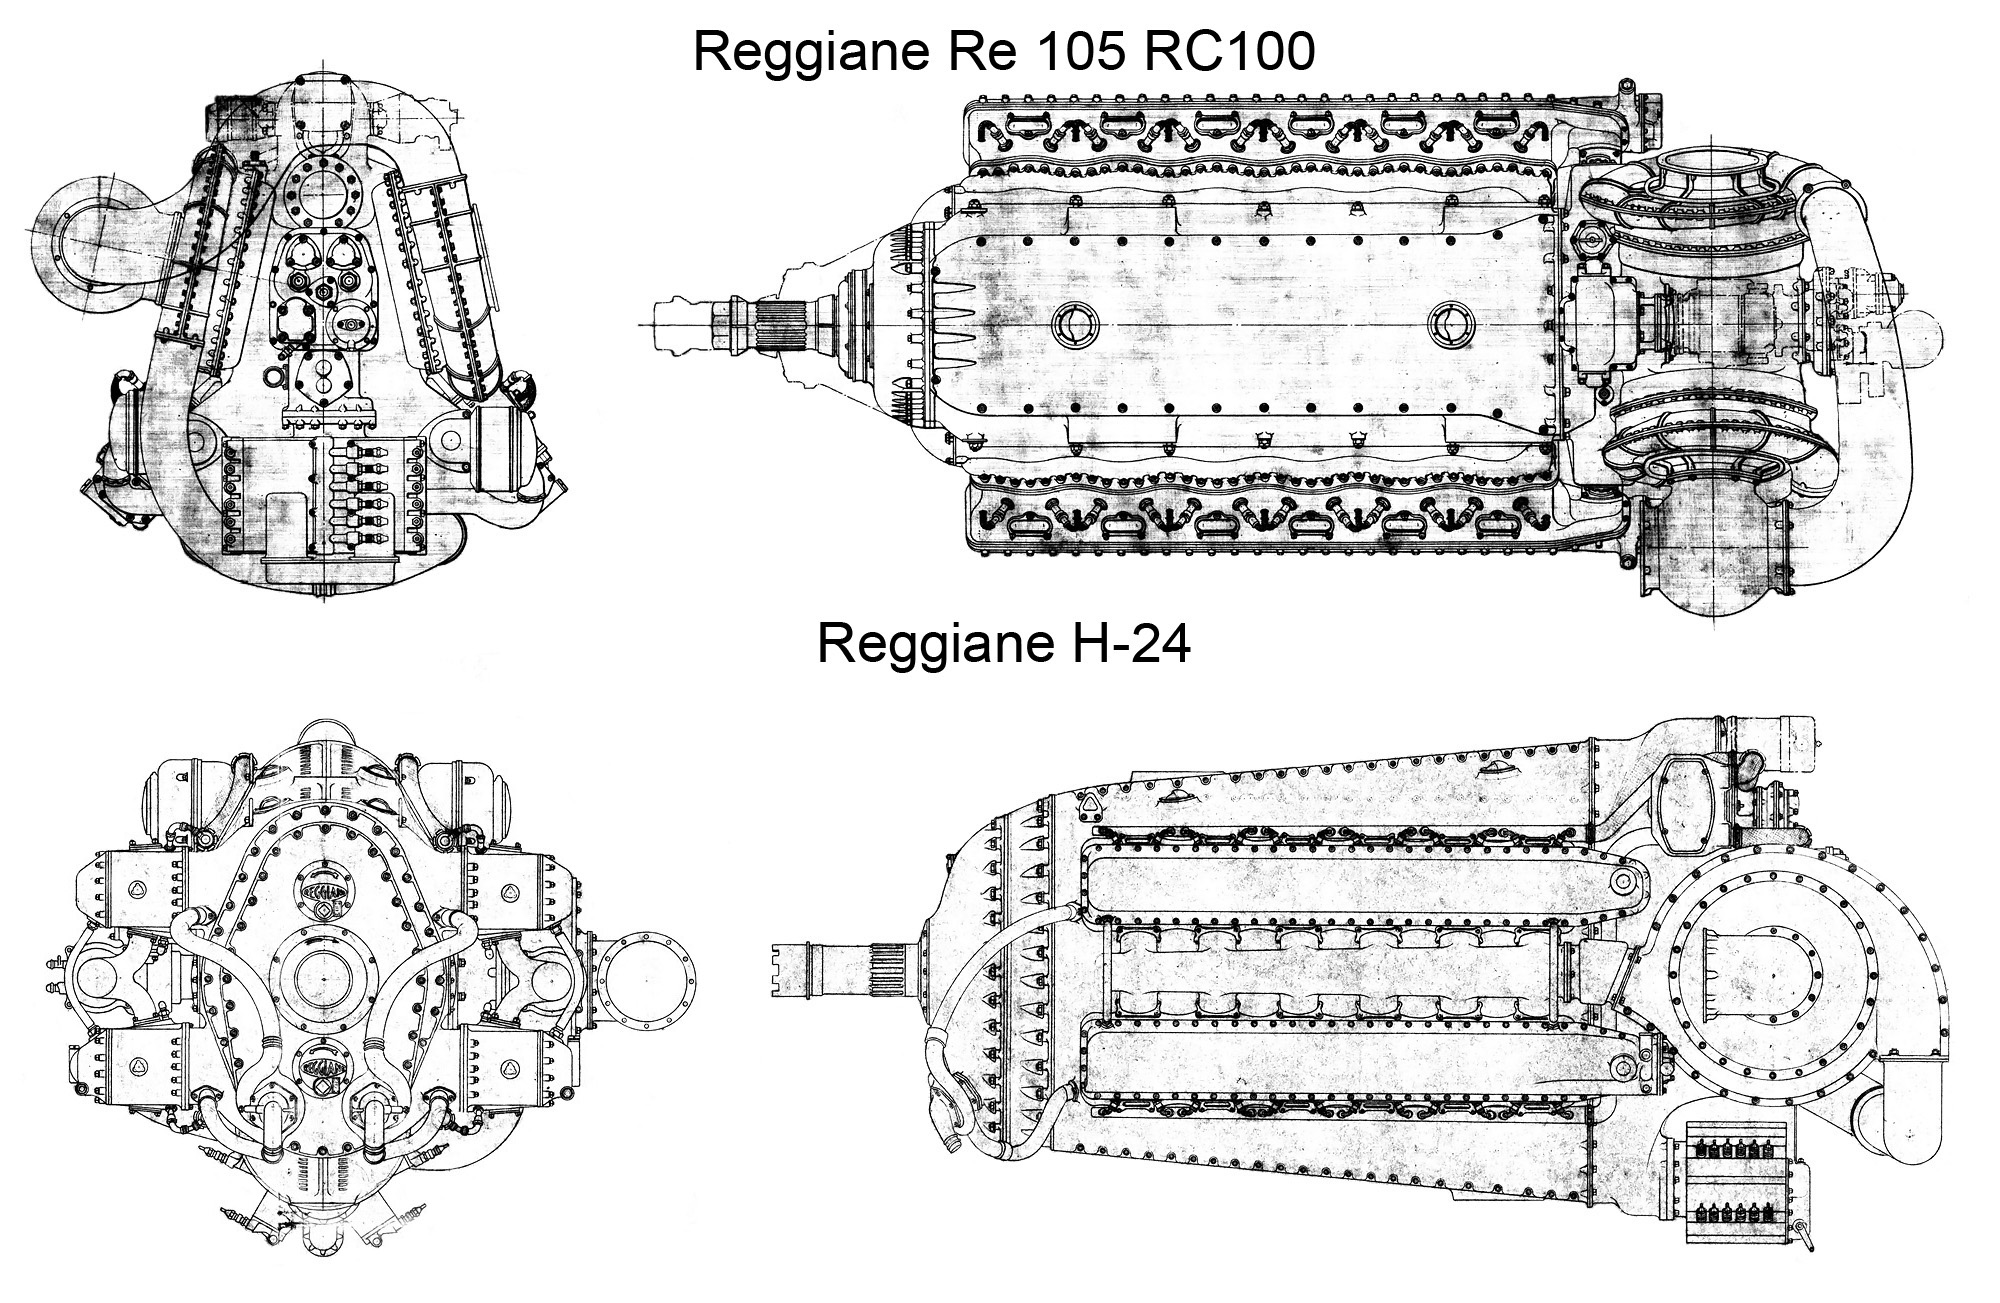 Reggiane Re 101 To Re 105 Aircraft Engines